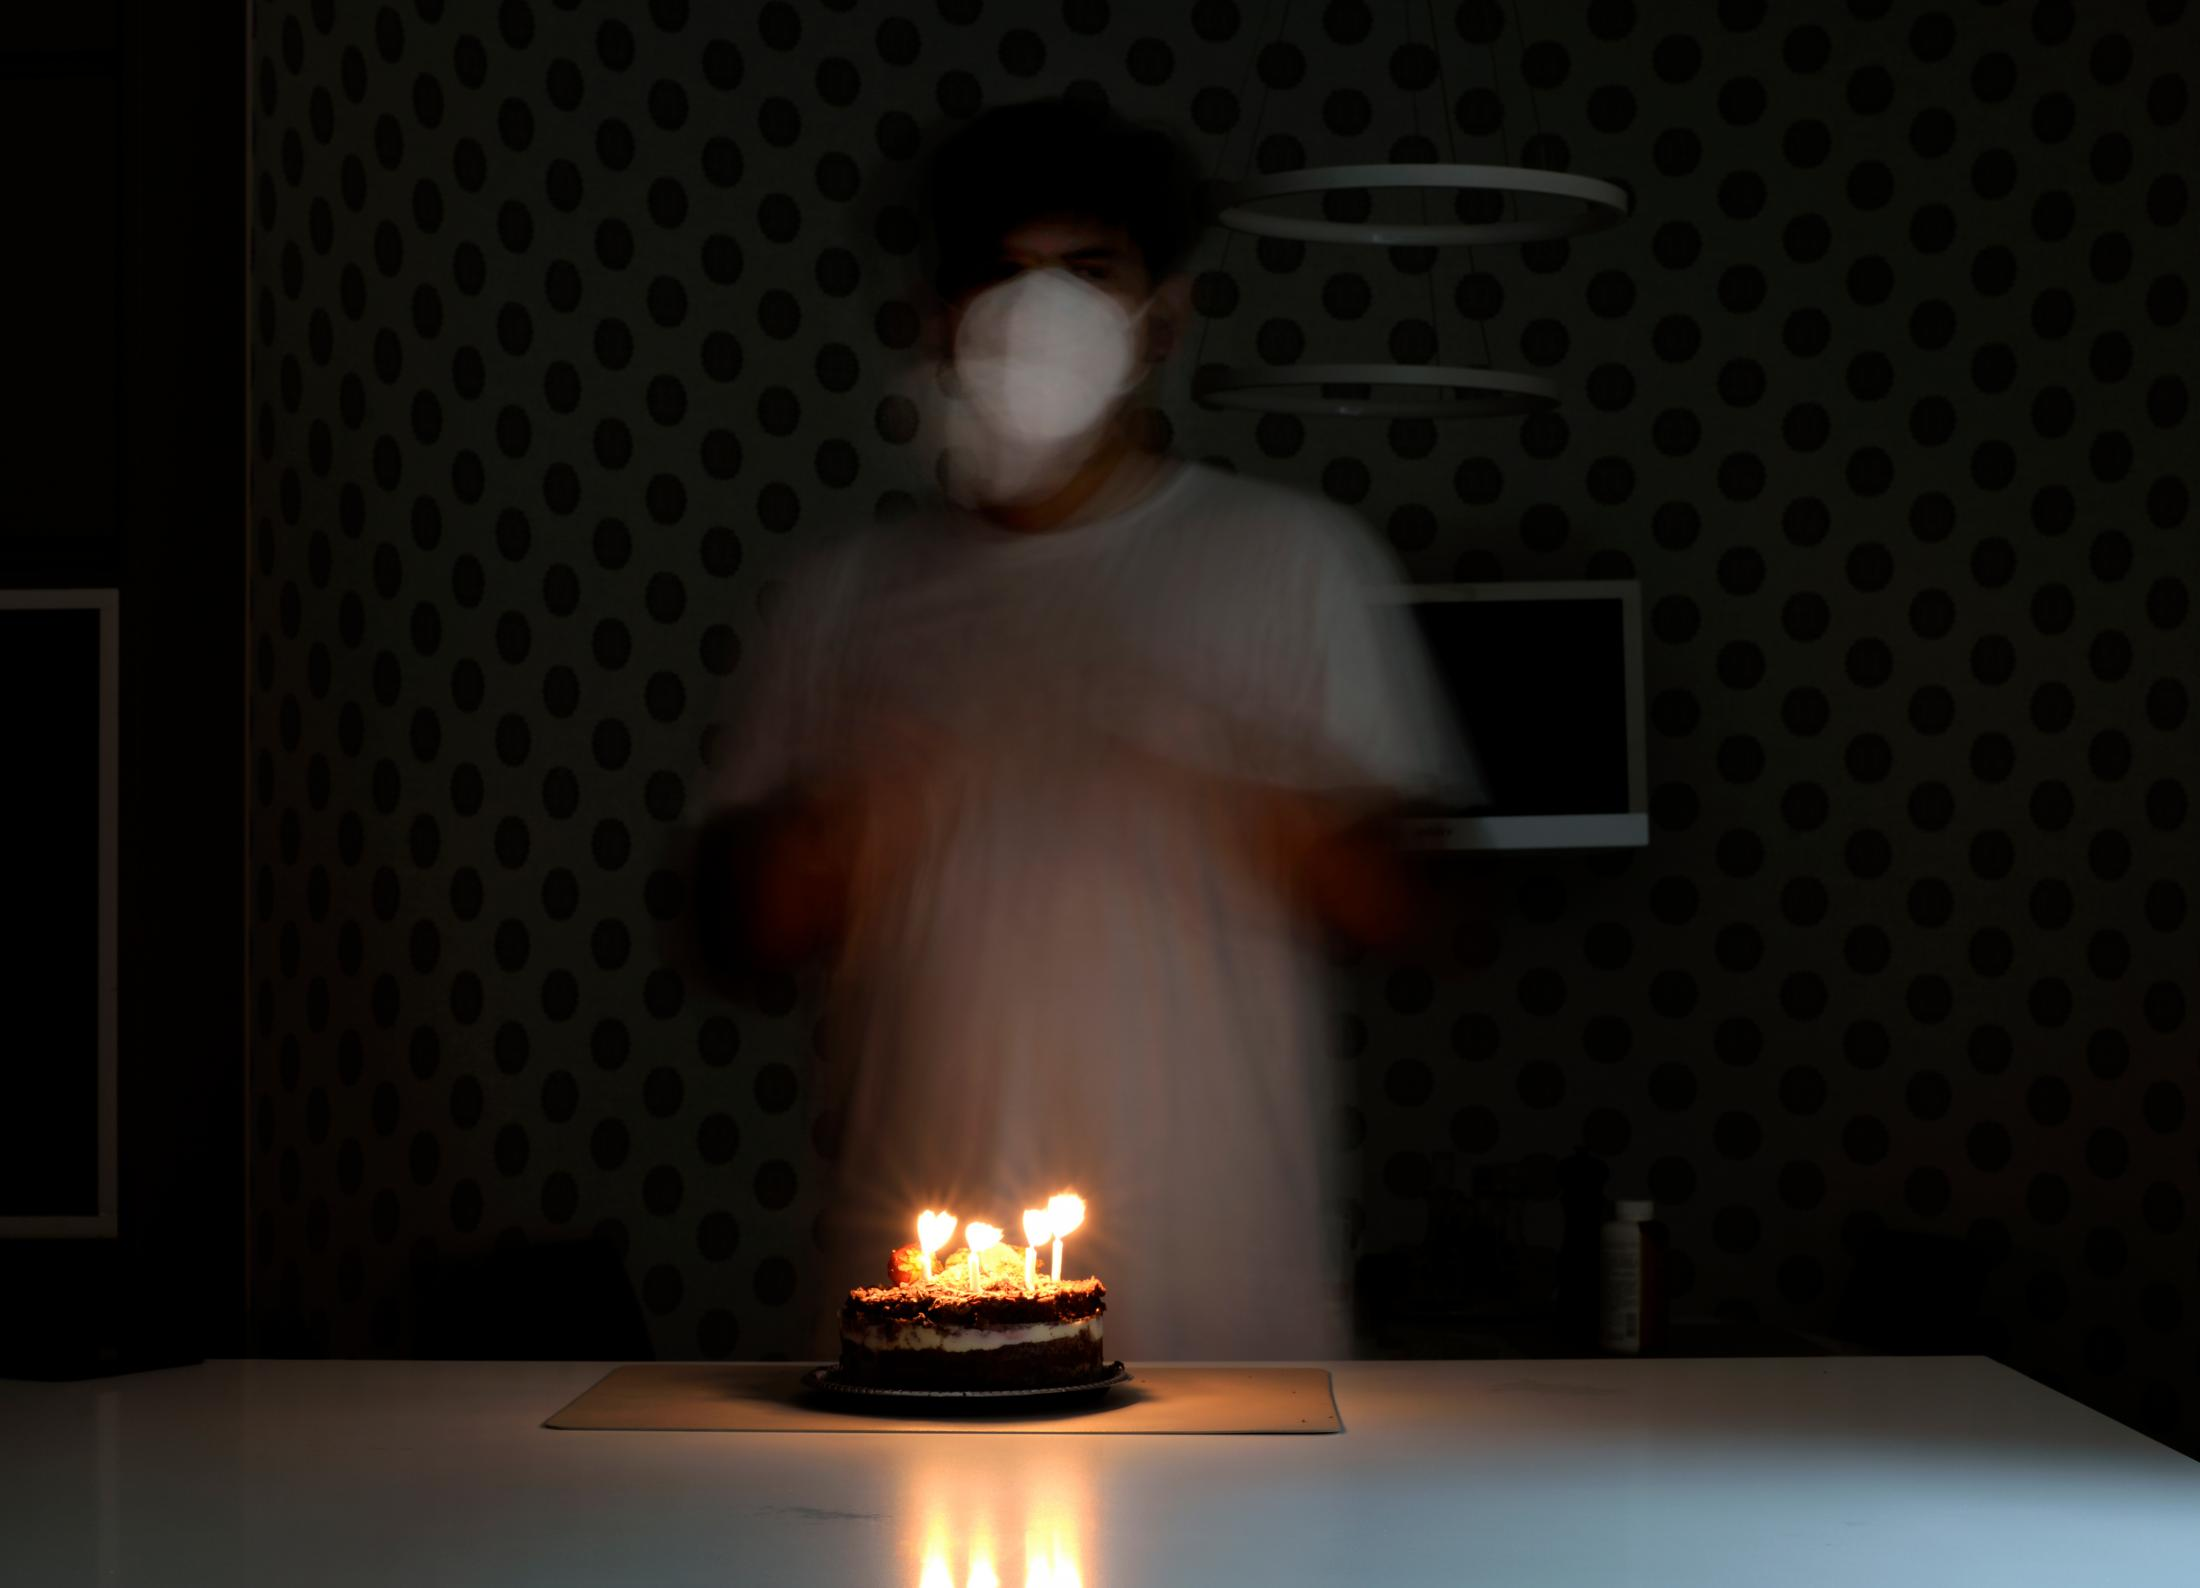 I celebrated my birthday, January 7, in the middle of quarantine. My sister and my mom were singing and clapping in the kitchen with me, while my dad was watching from his room on a video call. He had tested positive the same week, and quarantined in his room and we stayed in the house as well helping him.